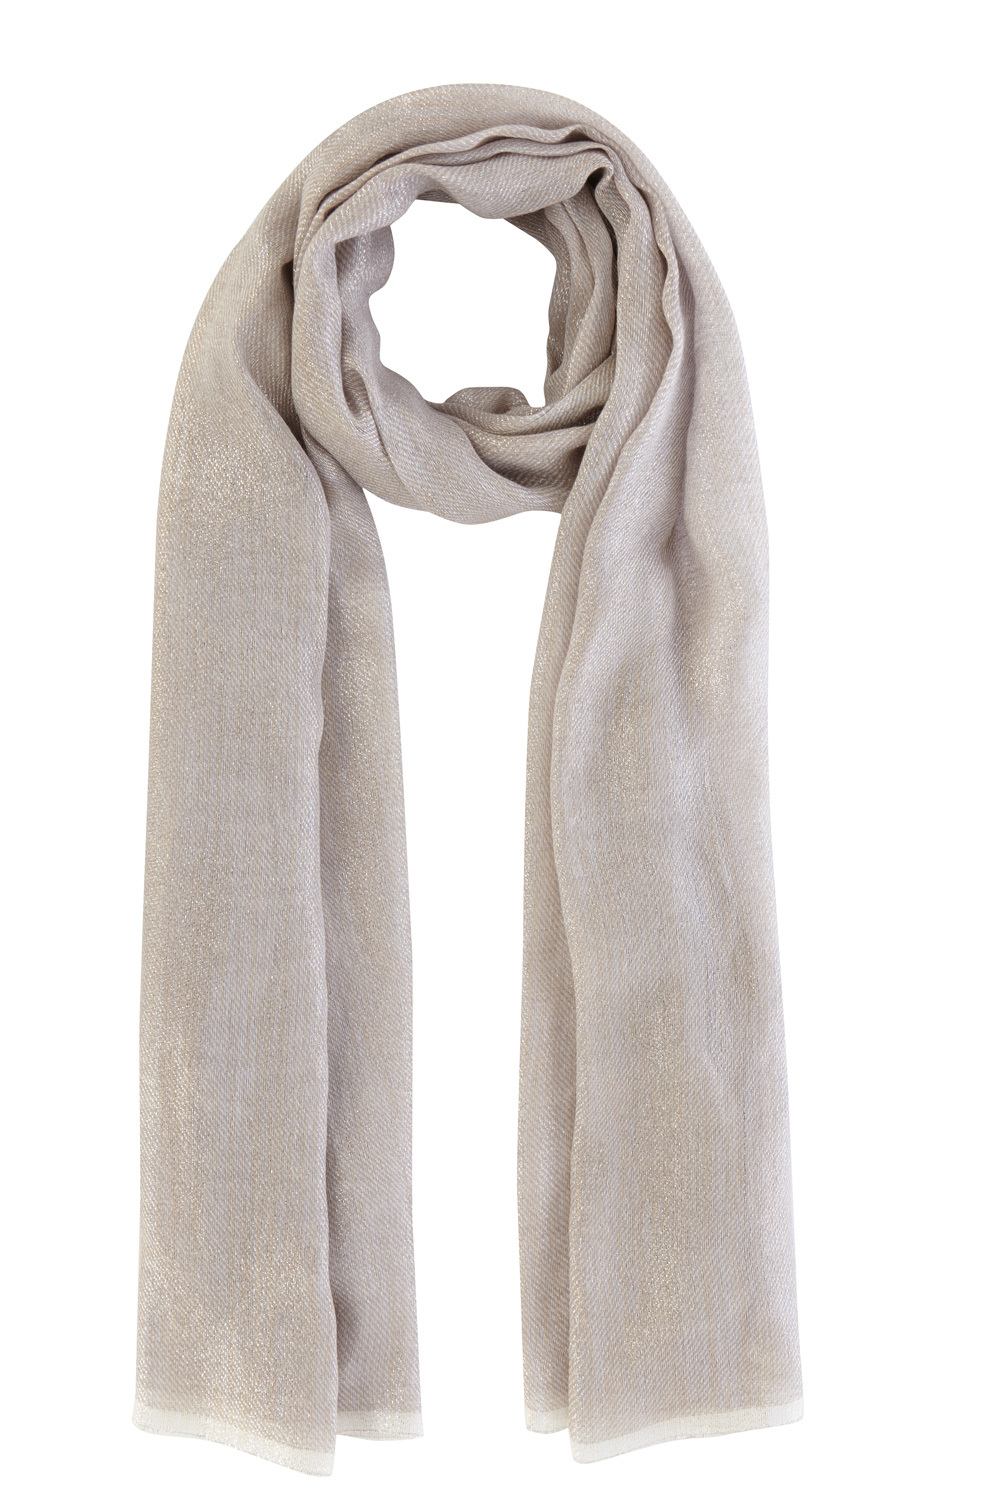 Metallic Scarf - predominant colour: light grey; occasions: casual, creative work; type of pattern: standard; style: regular; size: standard; material: fabric; pattern: plain; season: s/s 2016; wardrobe: basic